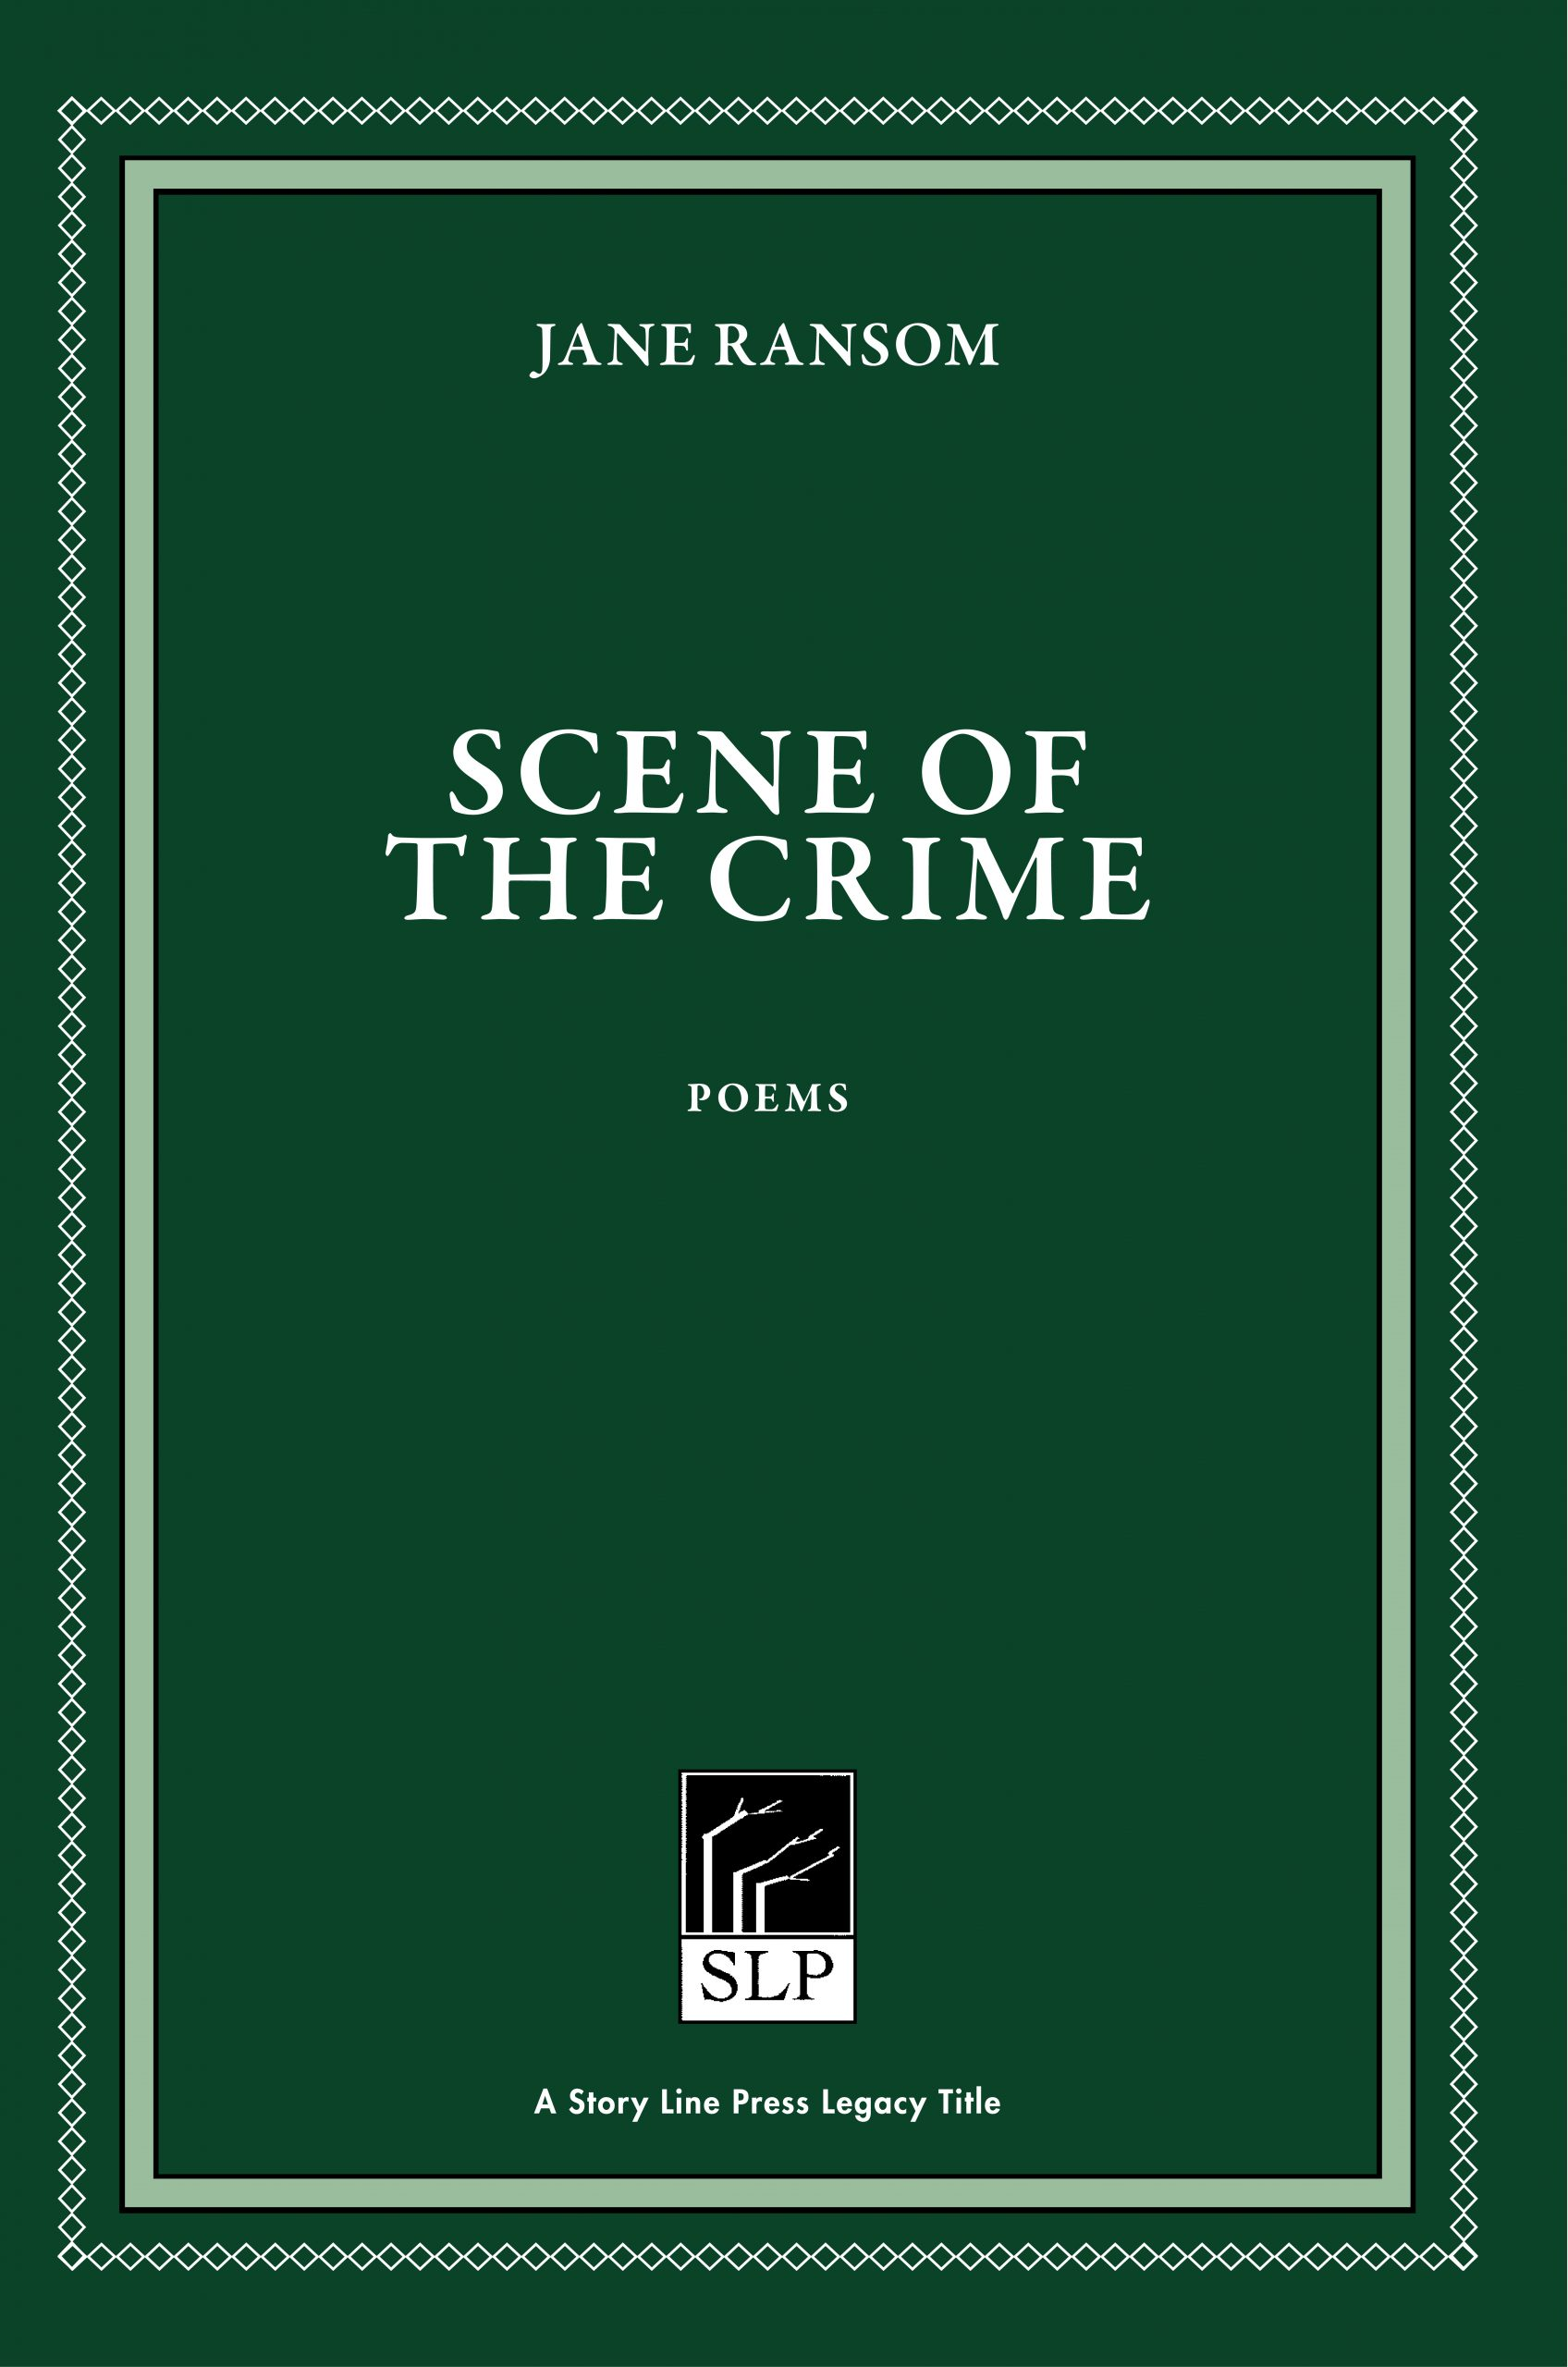 Story Line Press legacy tittle, Jane Ransom Scene of the Crime Poems, white script text against emerald green background.